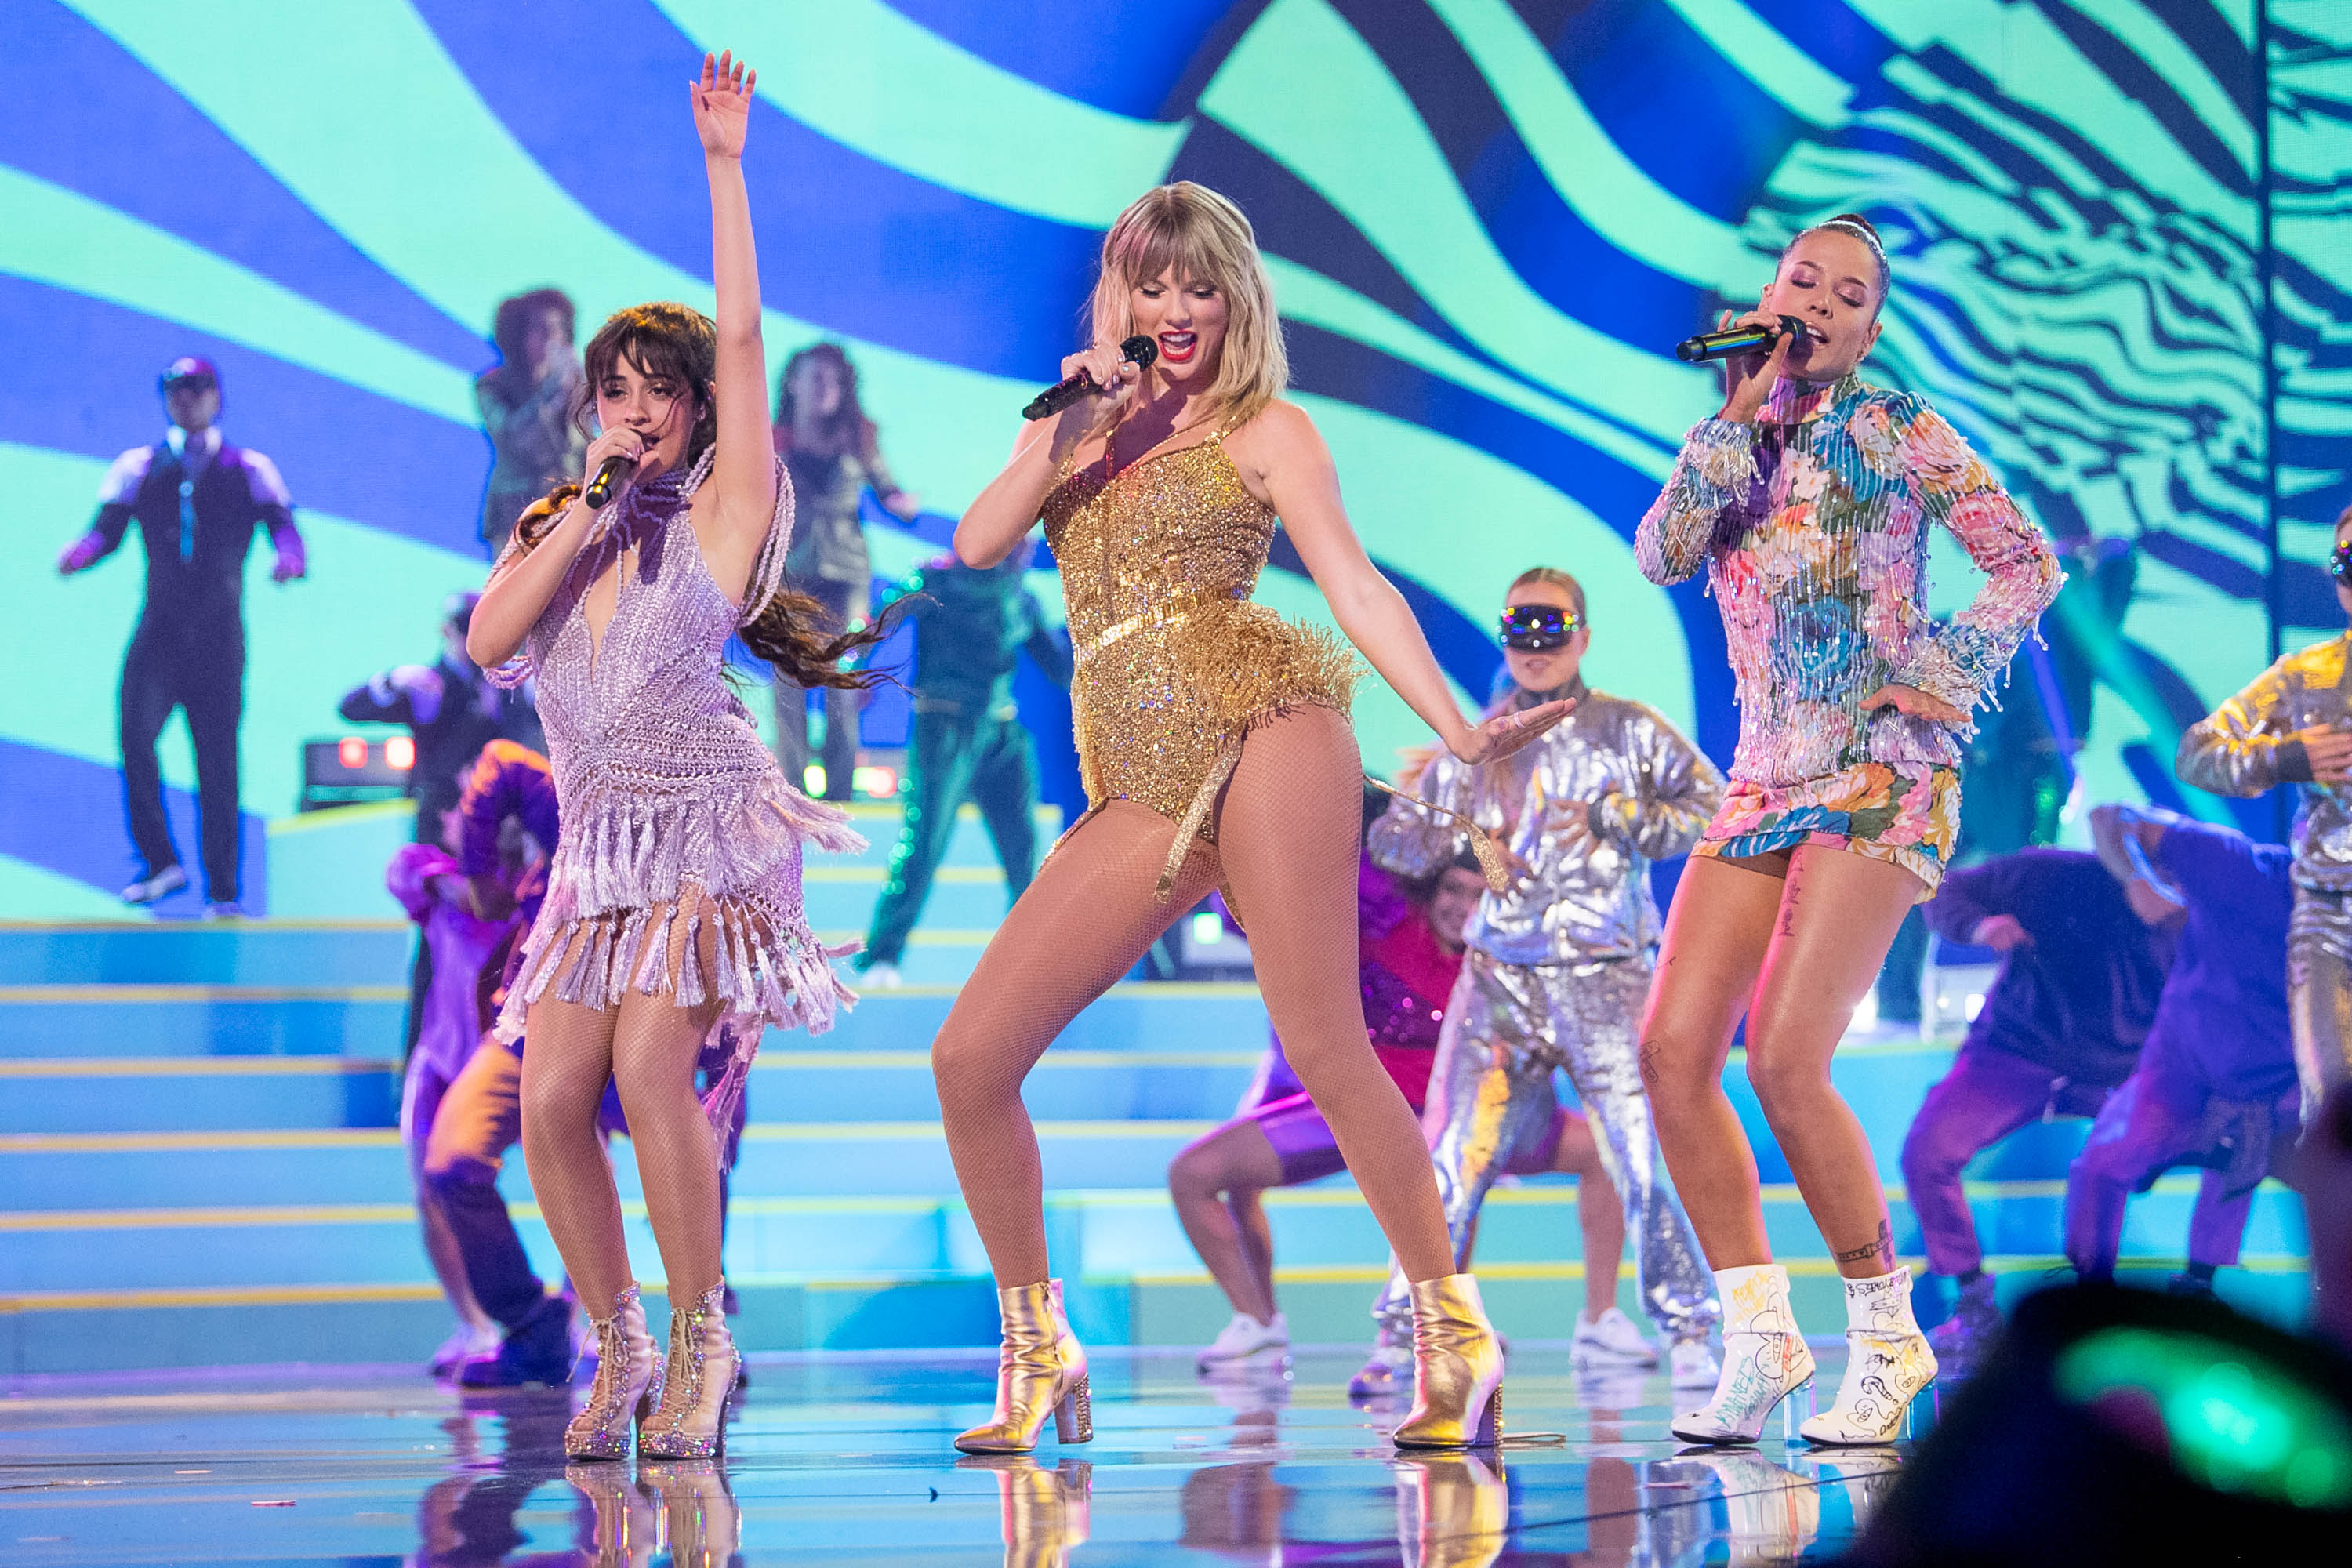 Taylor Swift on stage at the 2019 AMAs surrounded by other performers and dancers.